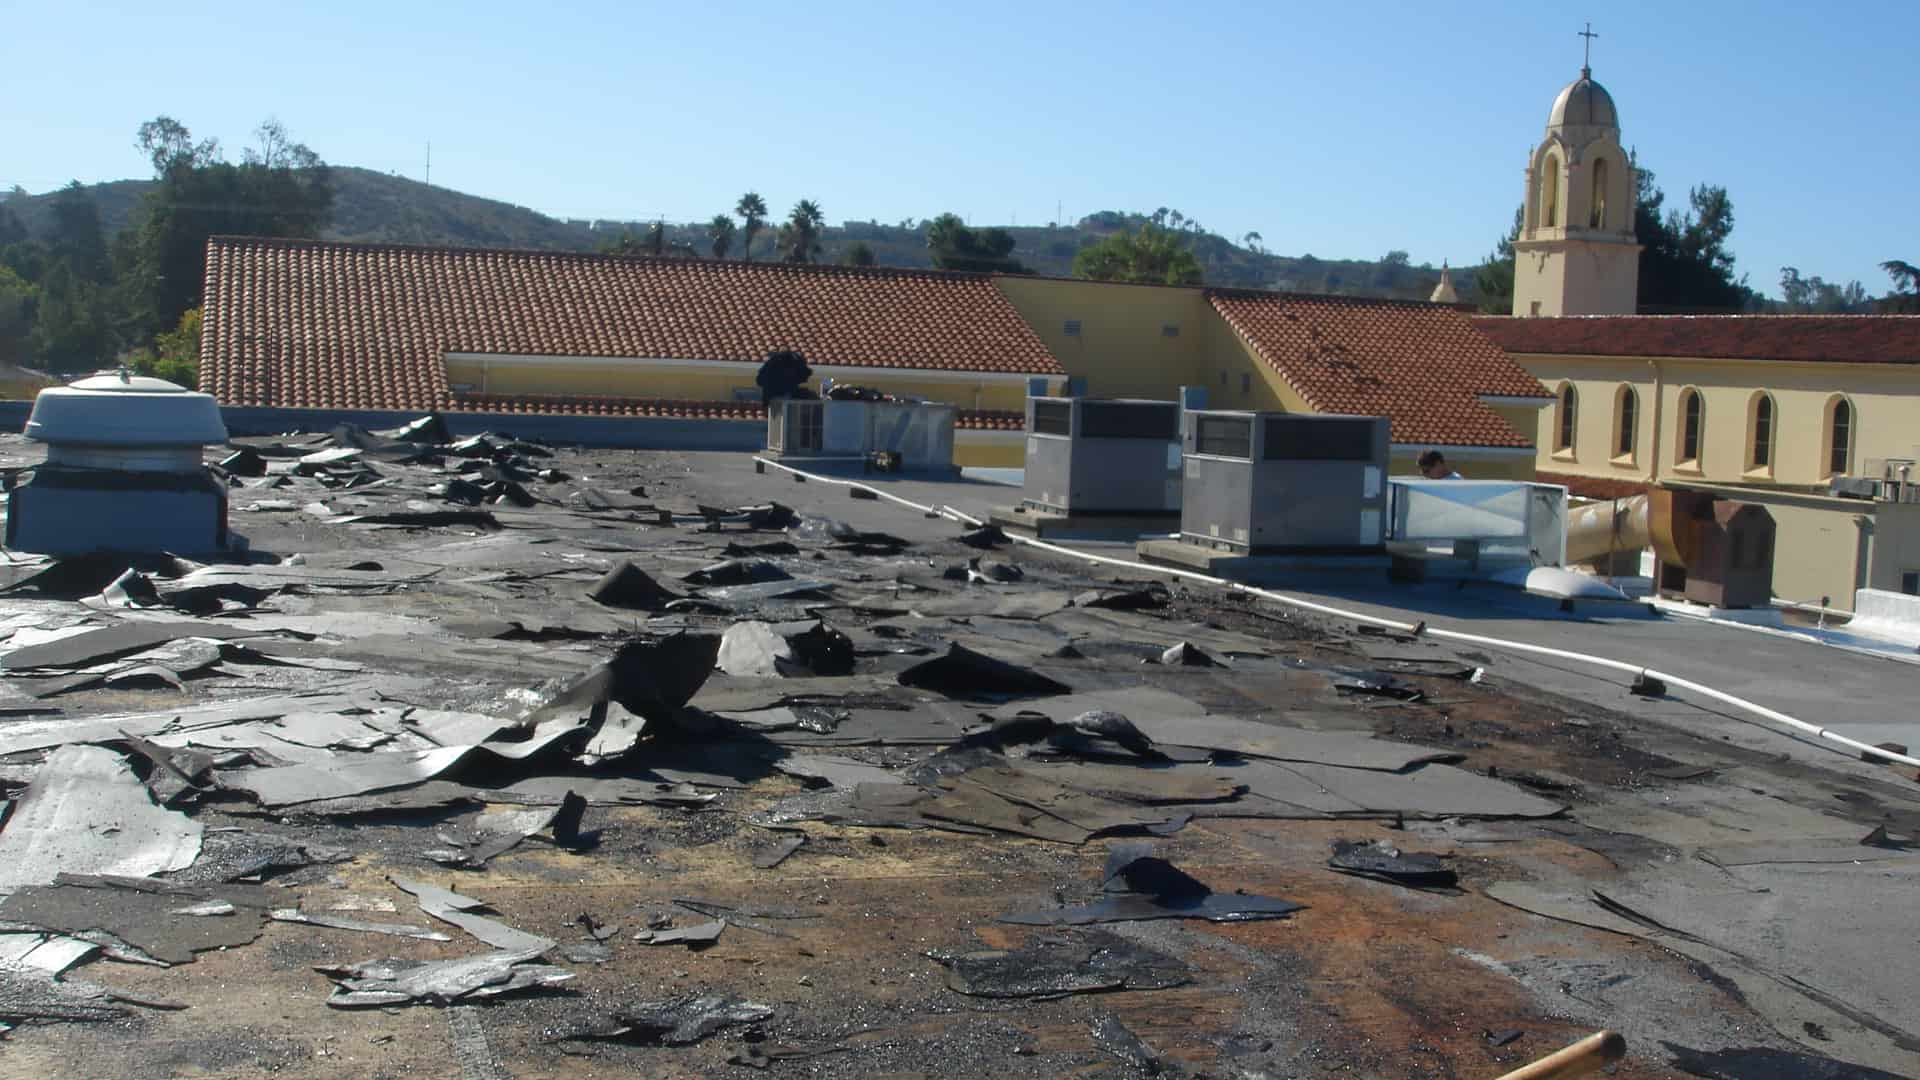 roofs condition can affect property insurance coverage